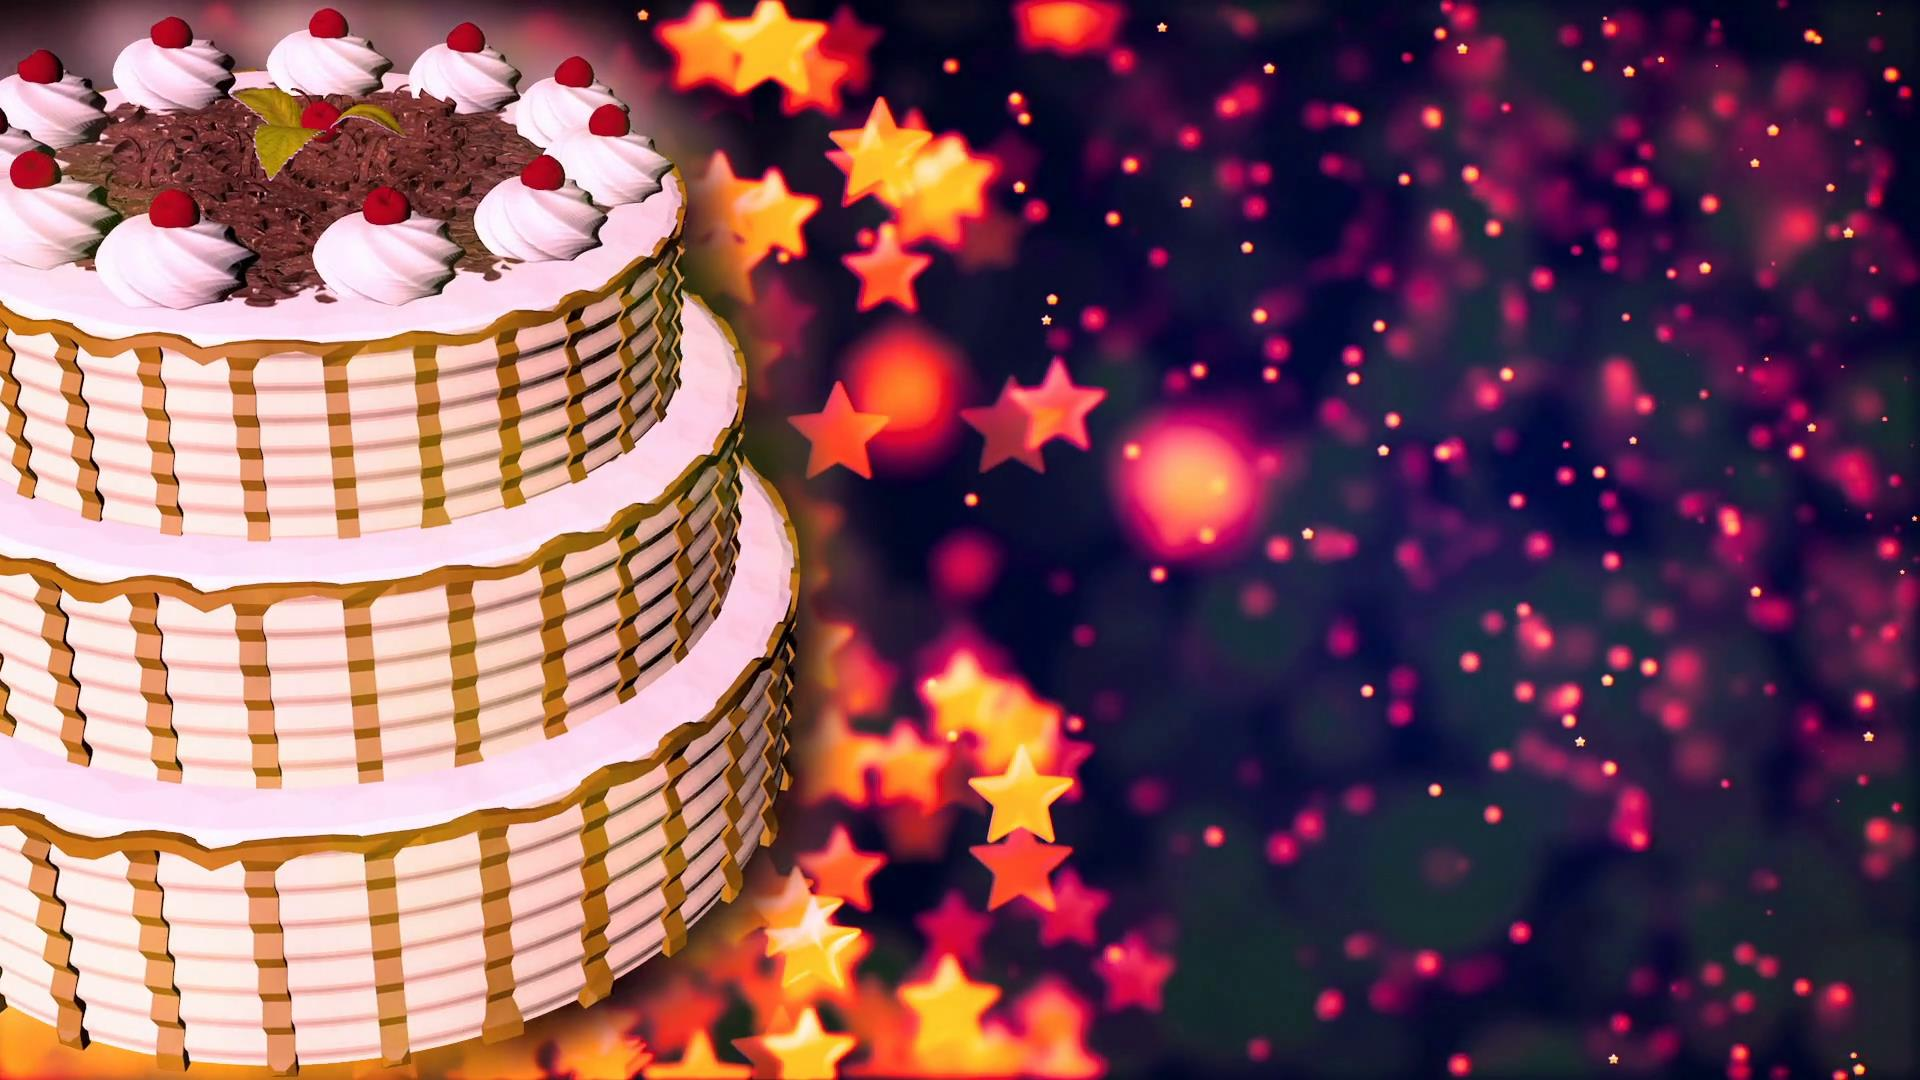 happy birthday background hd images ; happy-birthday-cake-loopable-abstract-background_bilspranqx_thumbnail-full01